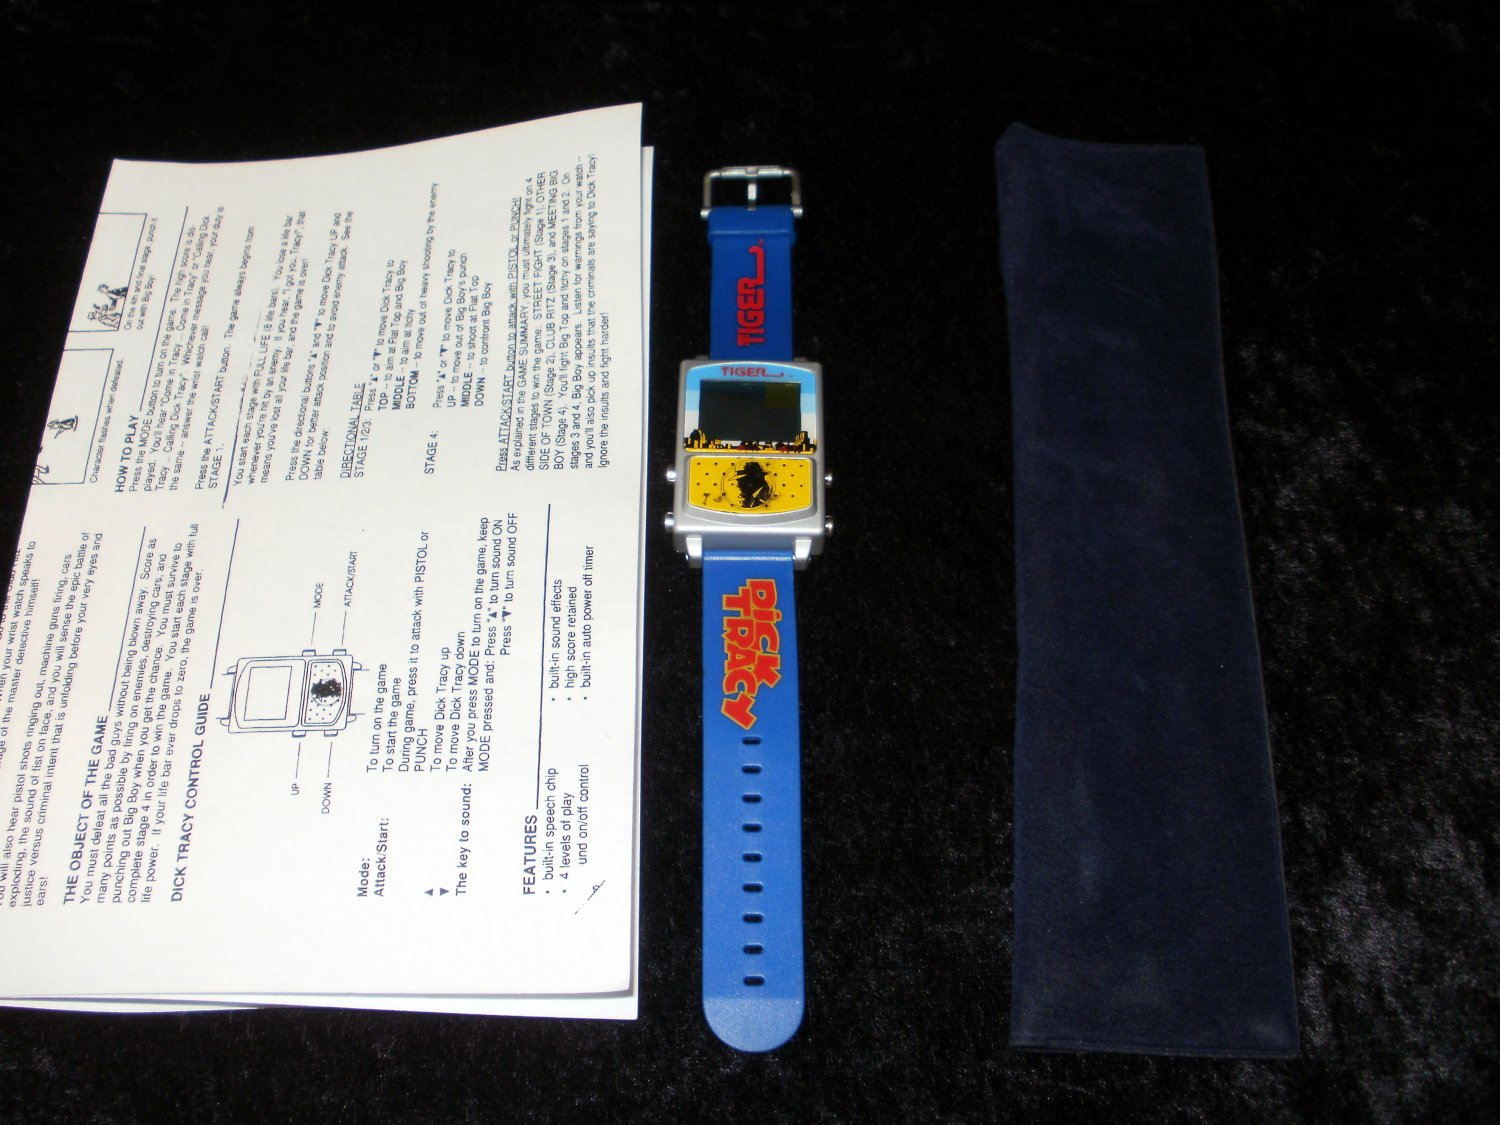 Dick Tracy - Vintage Talking Handheld Watch - Tiger Electronics 1990 - With Carrying Case - Rare